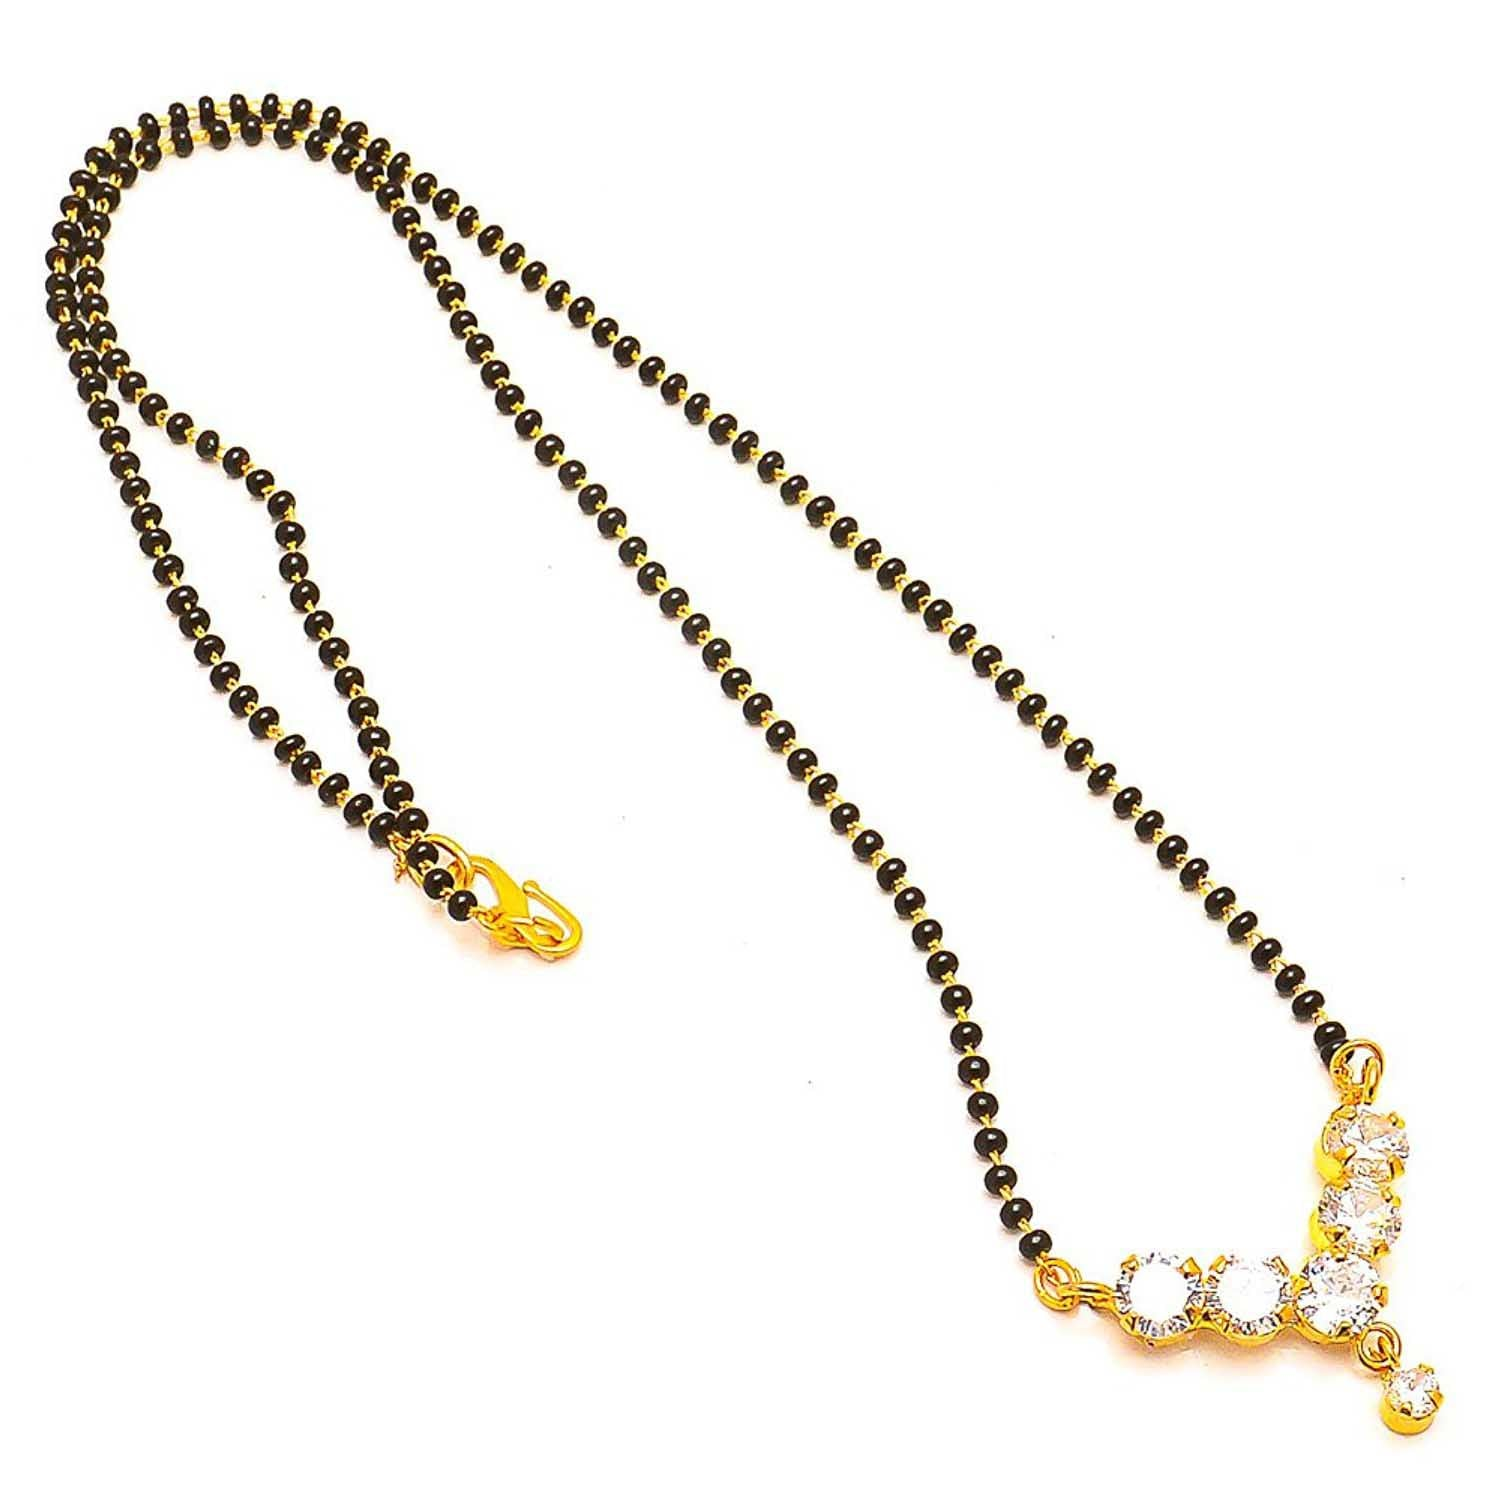 JFL- Stylish American Diamond Studded Black Bead Mangalsutra For Women